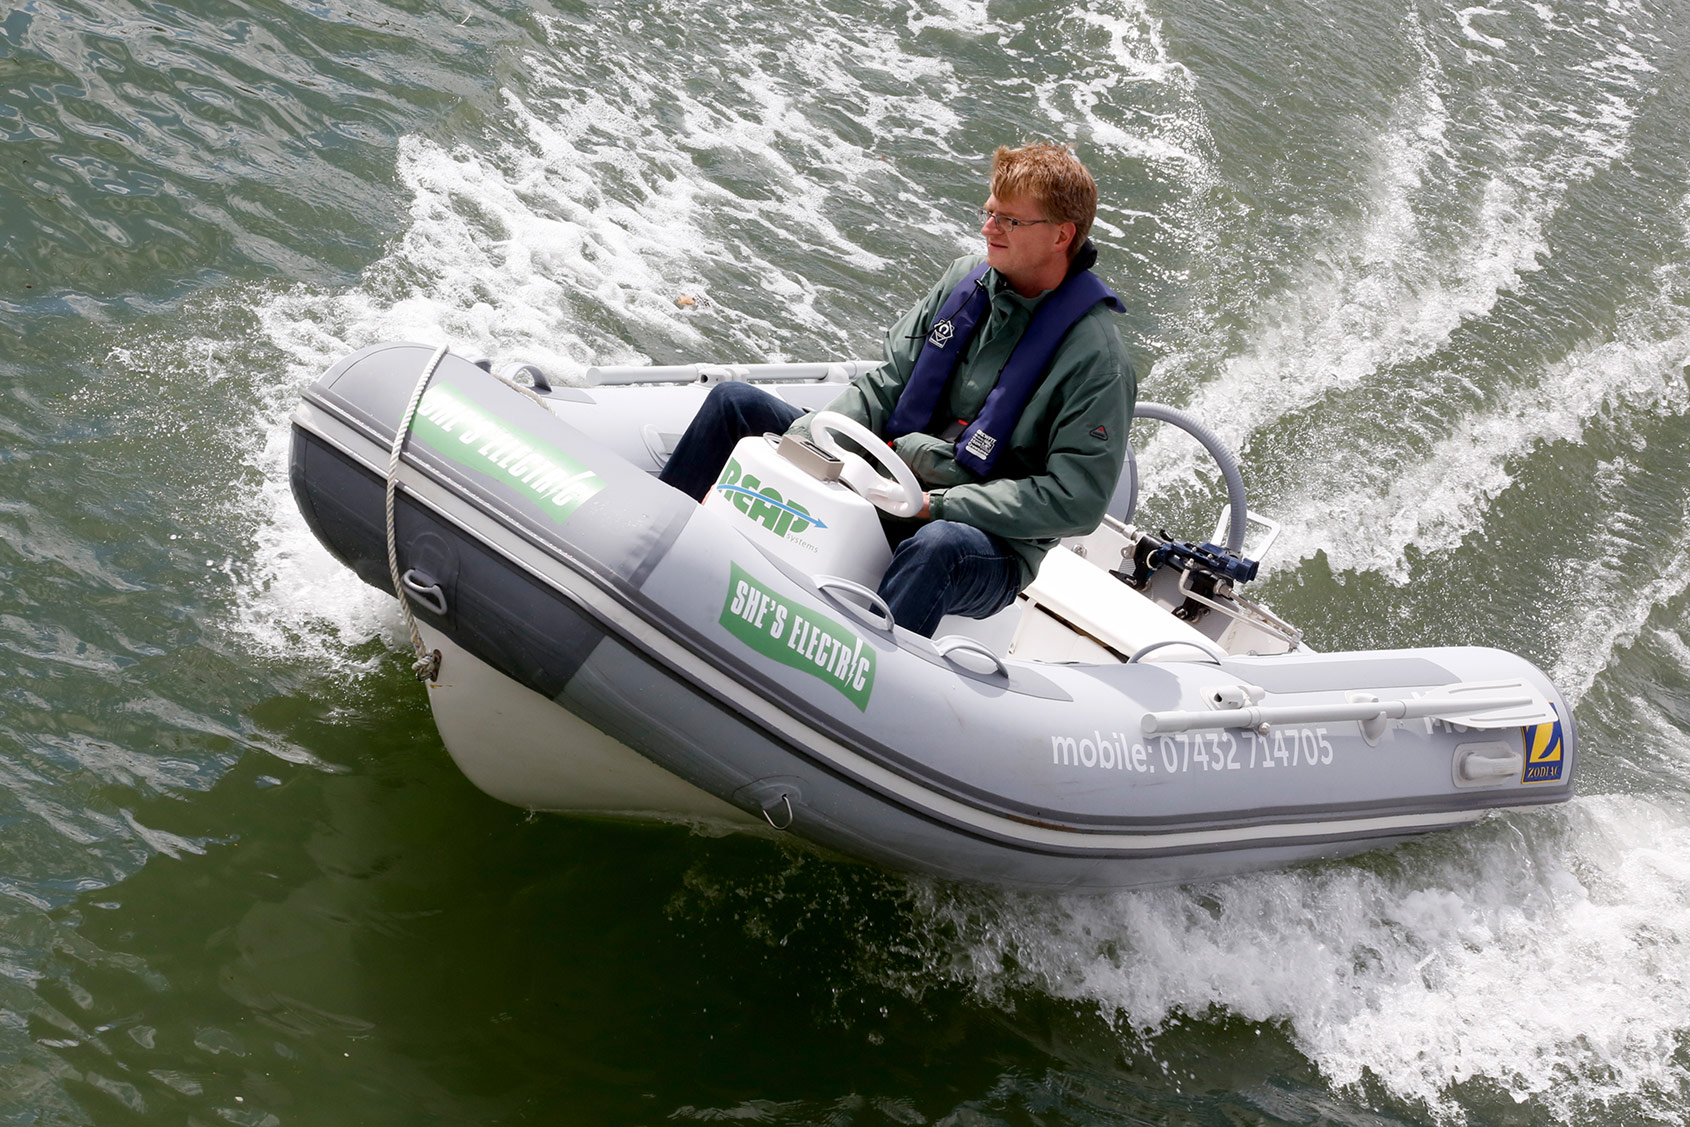 Fast and fun 15kW electric outboard performance compares with up to 25 HP conventional outboards!